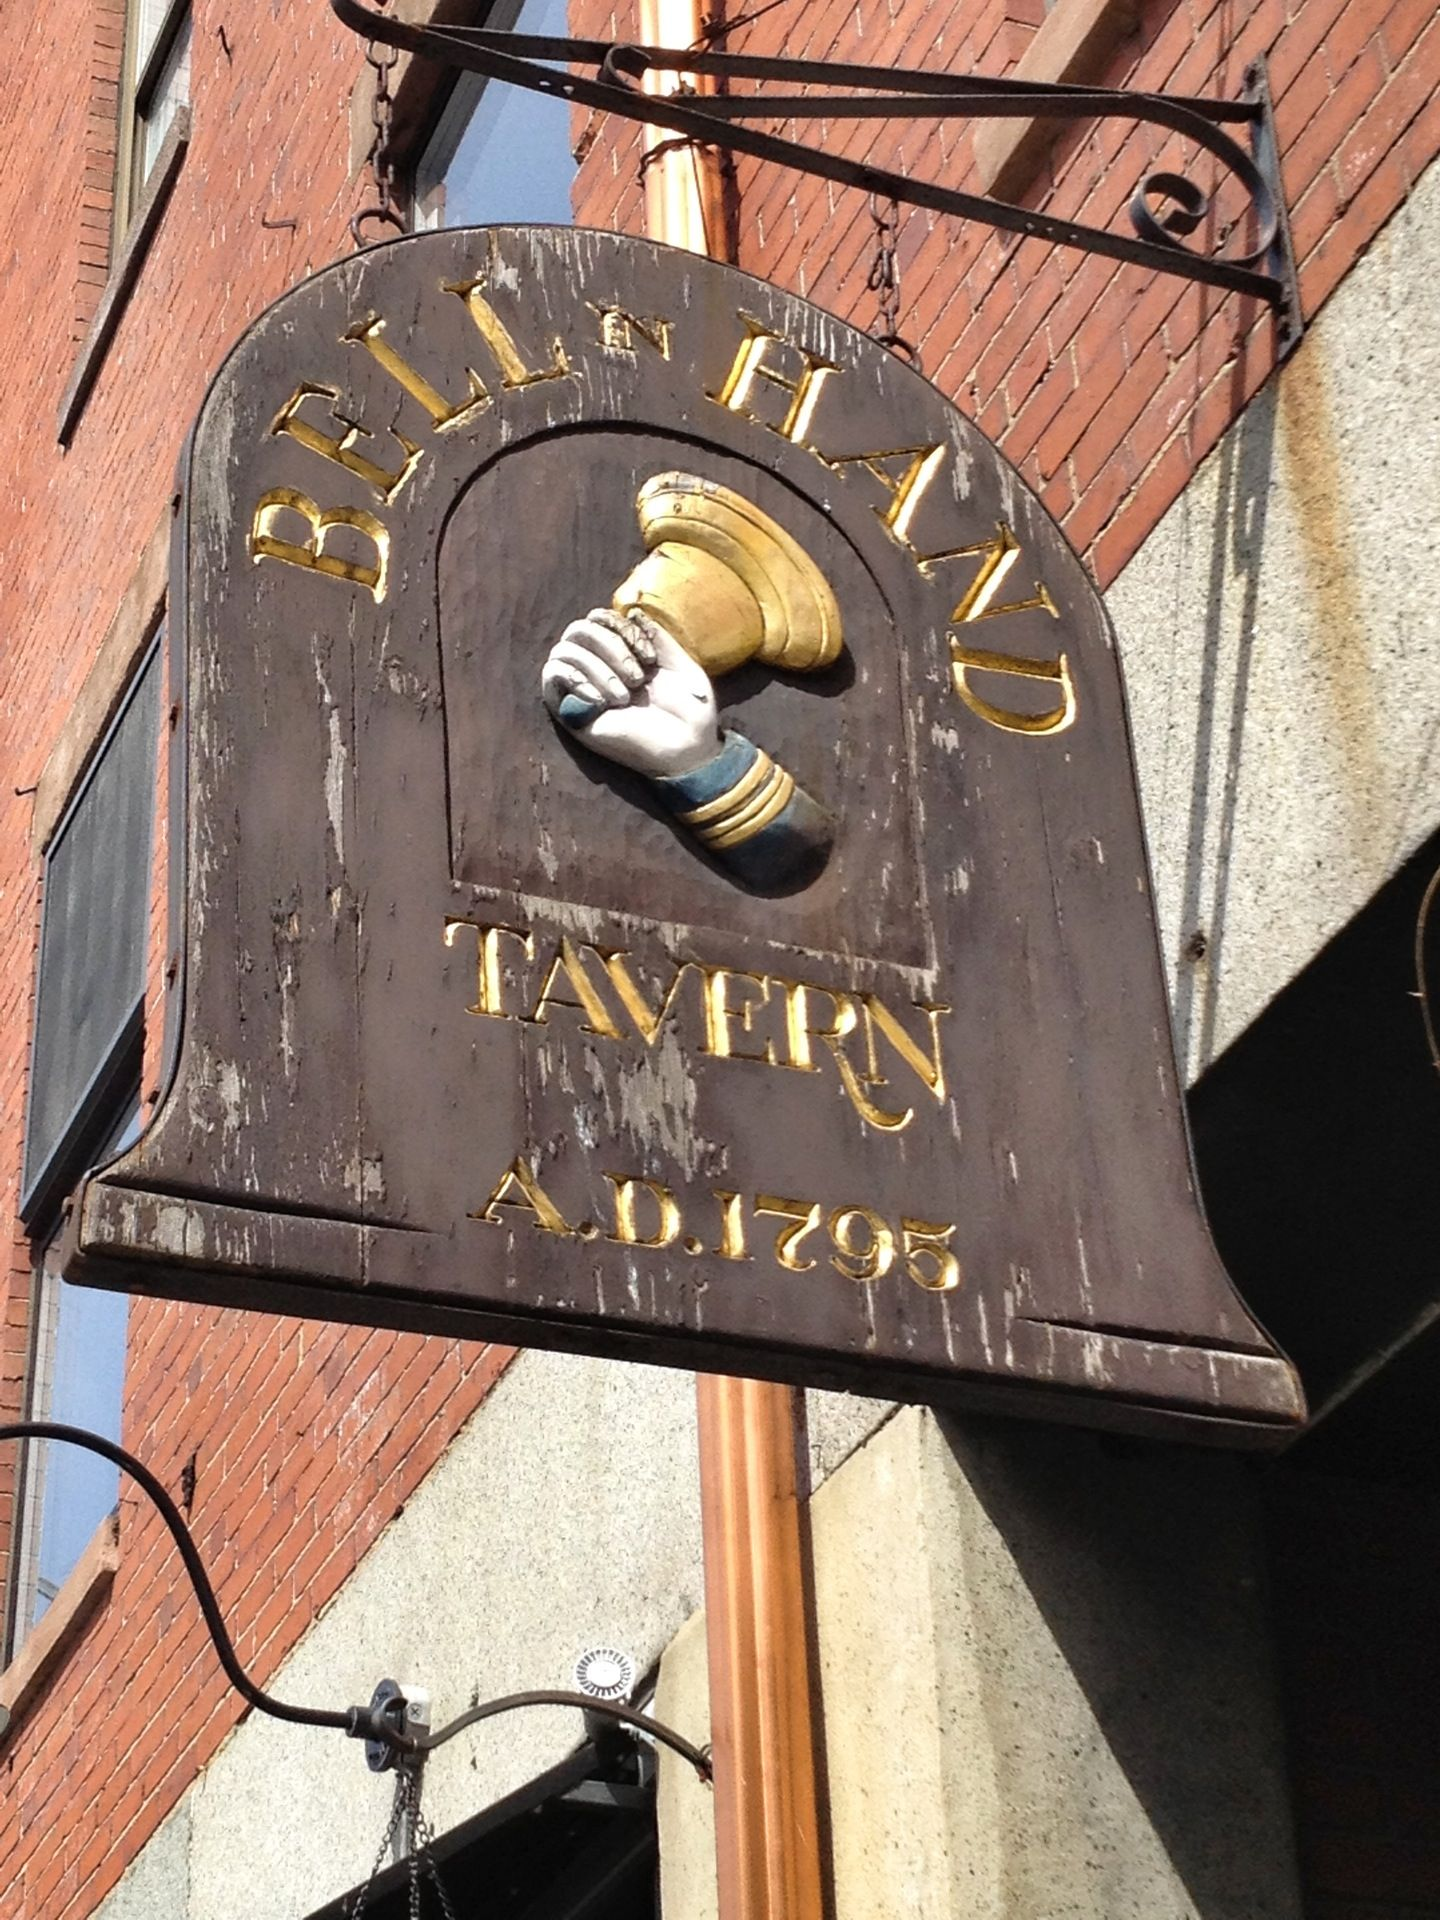 Bell in hand tavern boston vacation old bar old signs